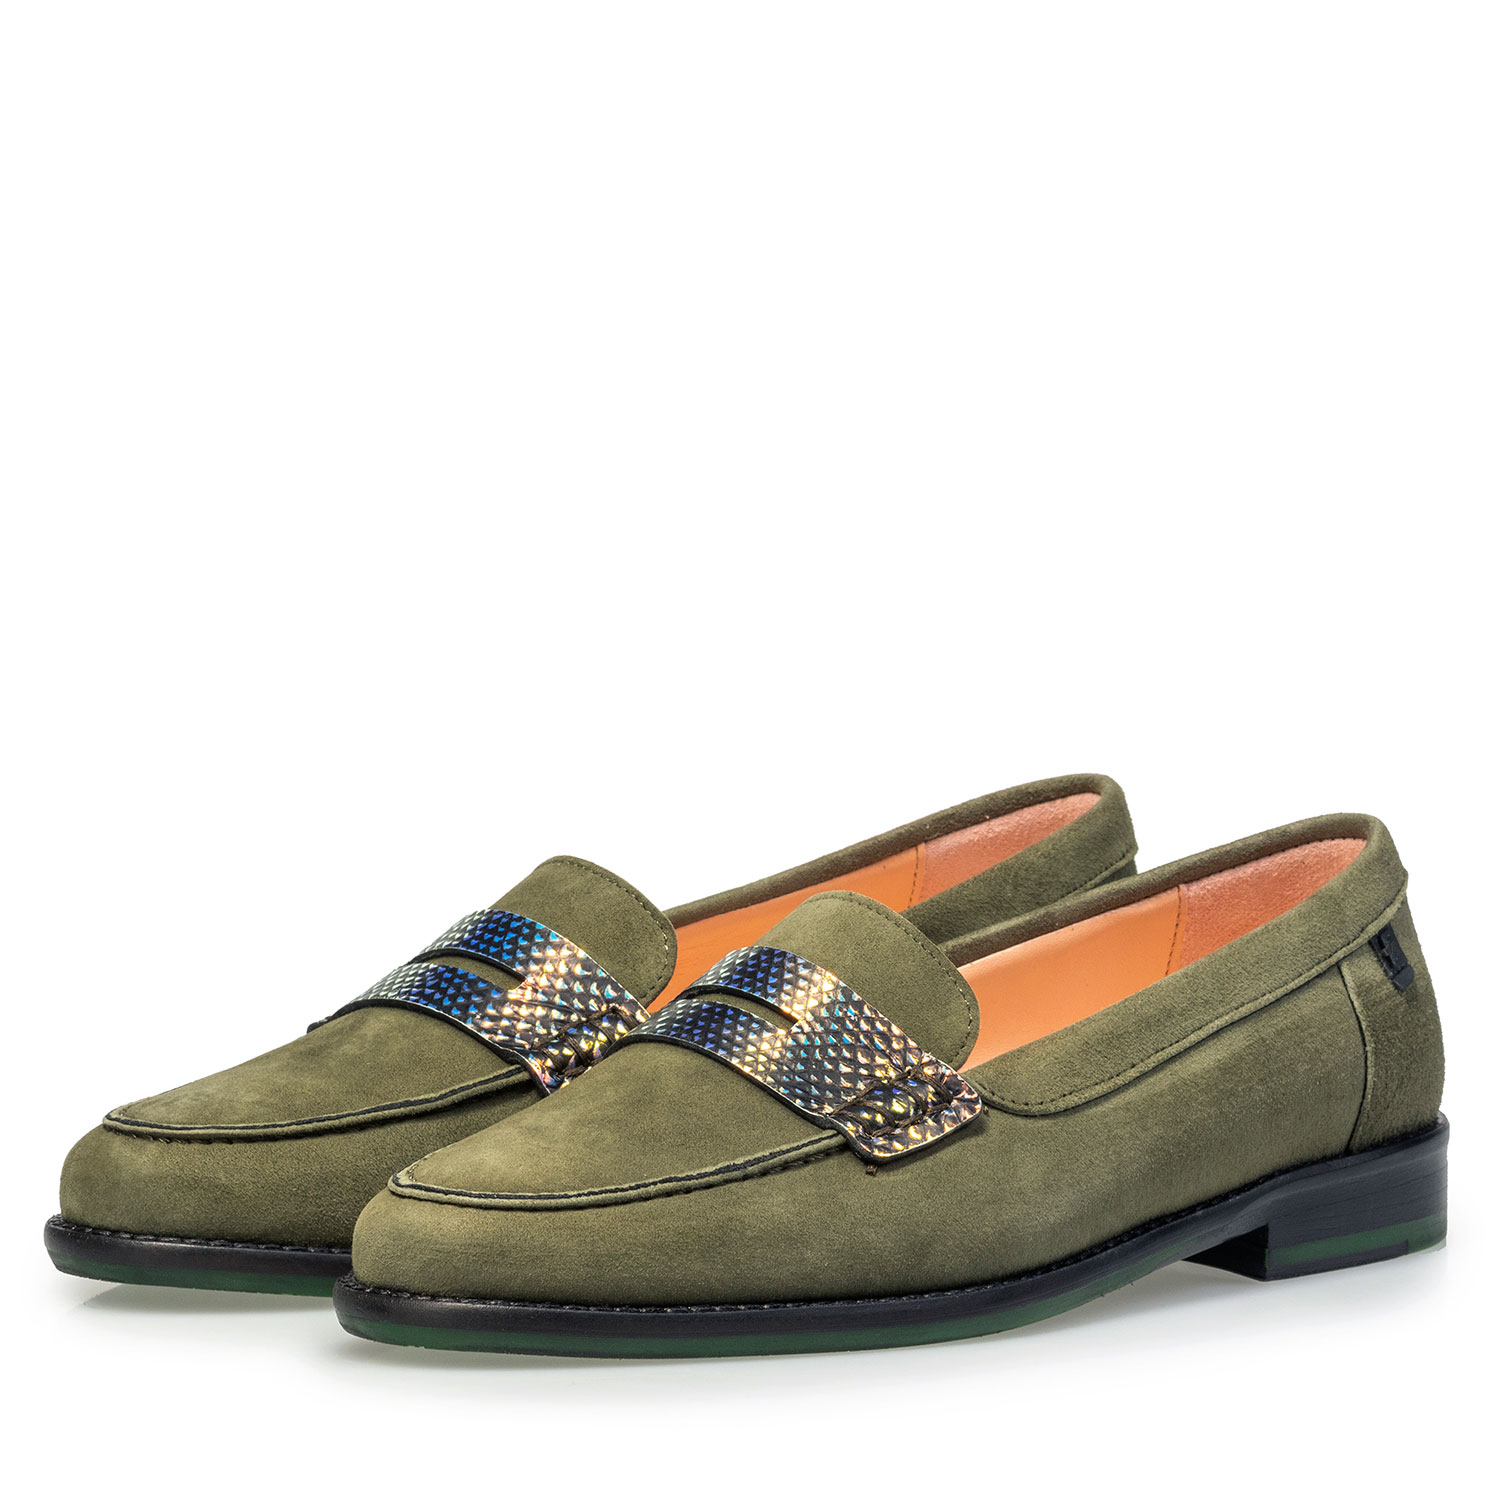 85429/01 - Olive green suede leather loafer